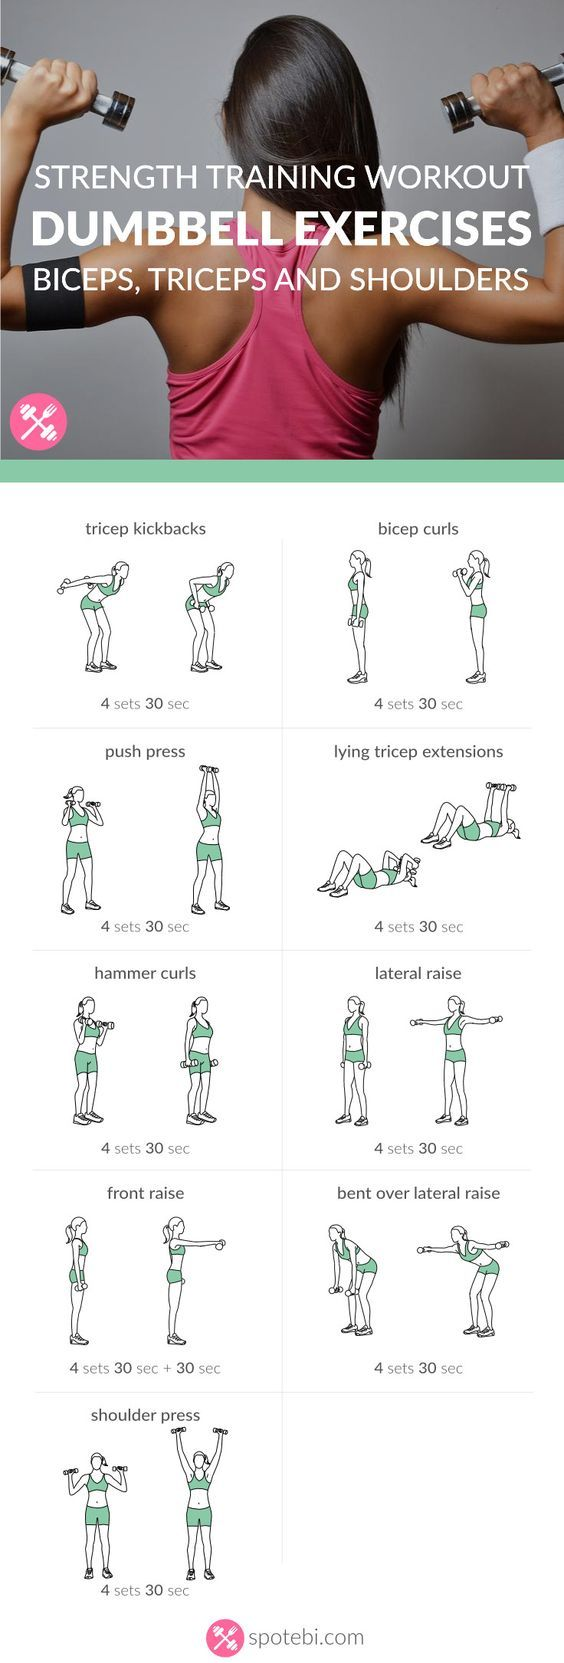 Build bigger biceps with this one trick Get rid of arm fat and tone sleek muscles with the help of these dumbbell exercises. Sculpt, tone and firm your biceps, triceps and shoulders in no time! www.spotebi.com/...: